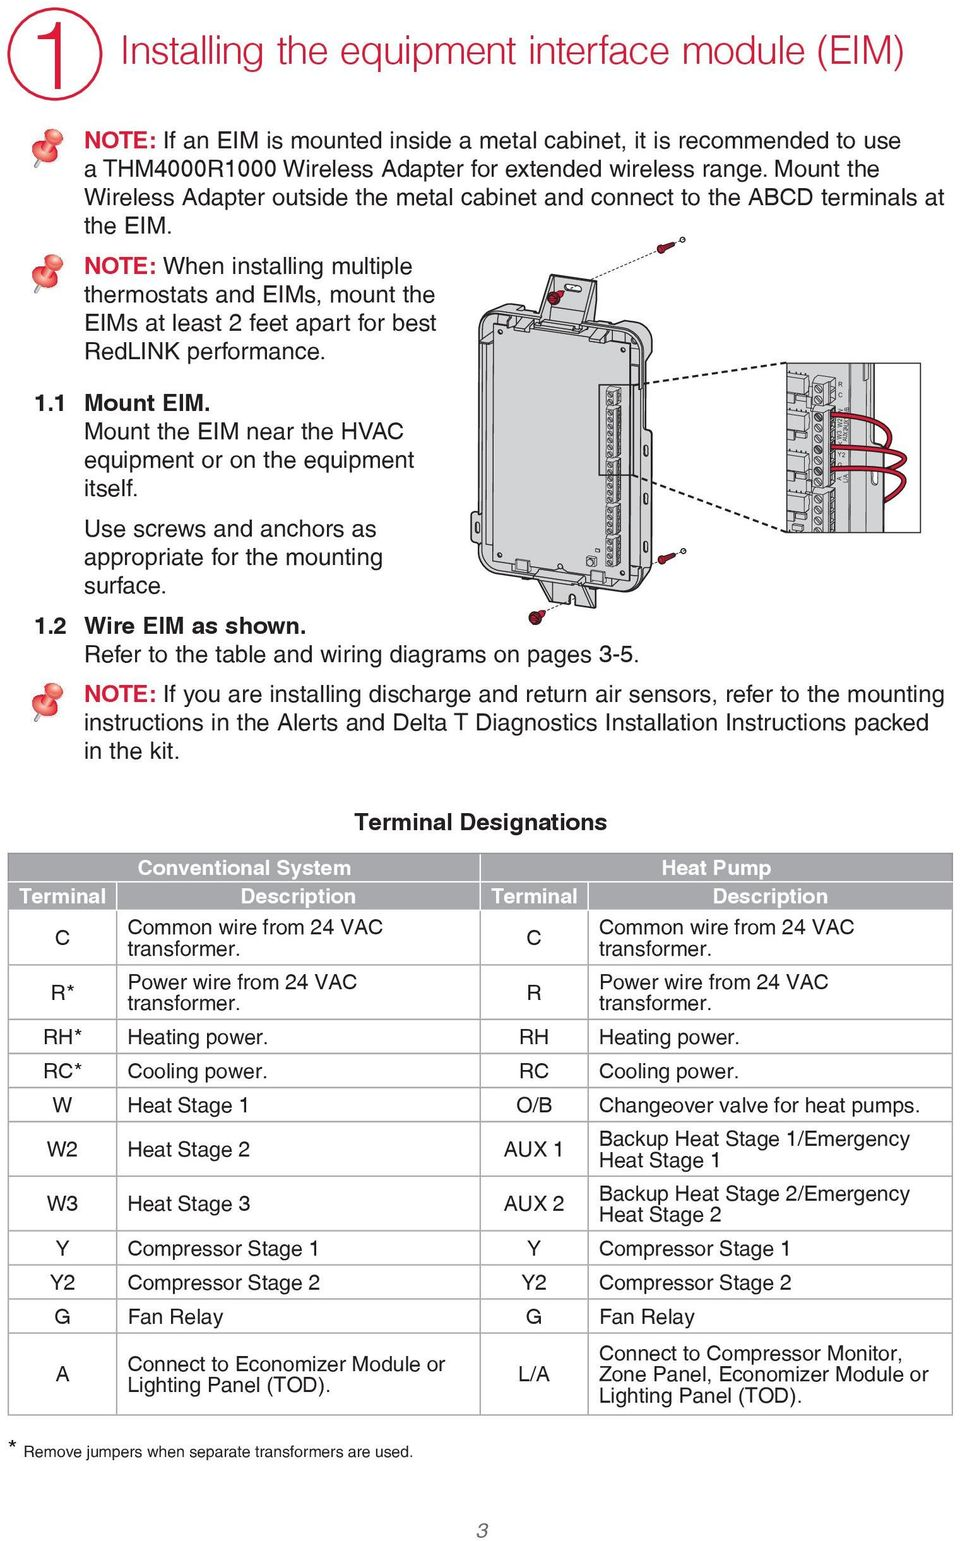 eim wiring diagram wiring library trane heat pump wiring diagram note when installing multiple thermostats and eims, mount the eims at least 2 feet installation guide